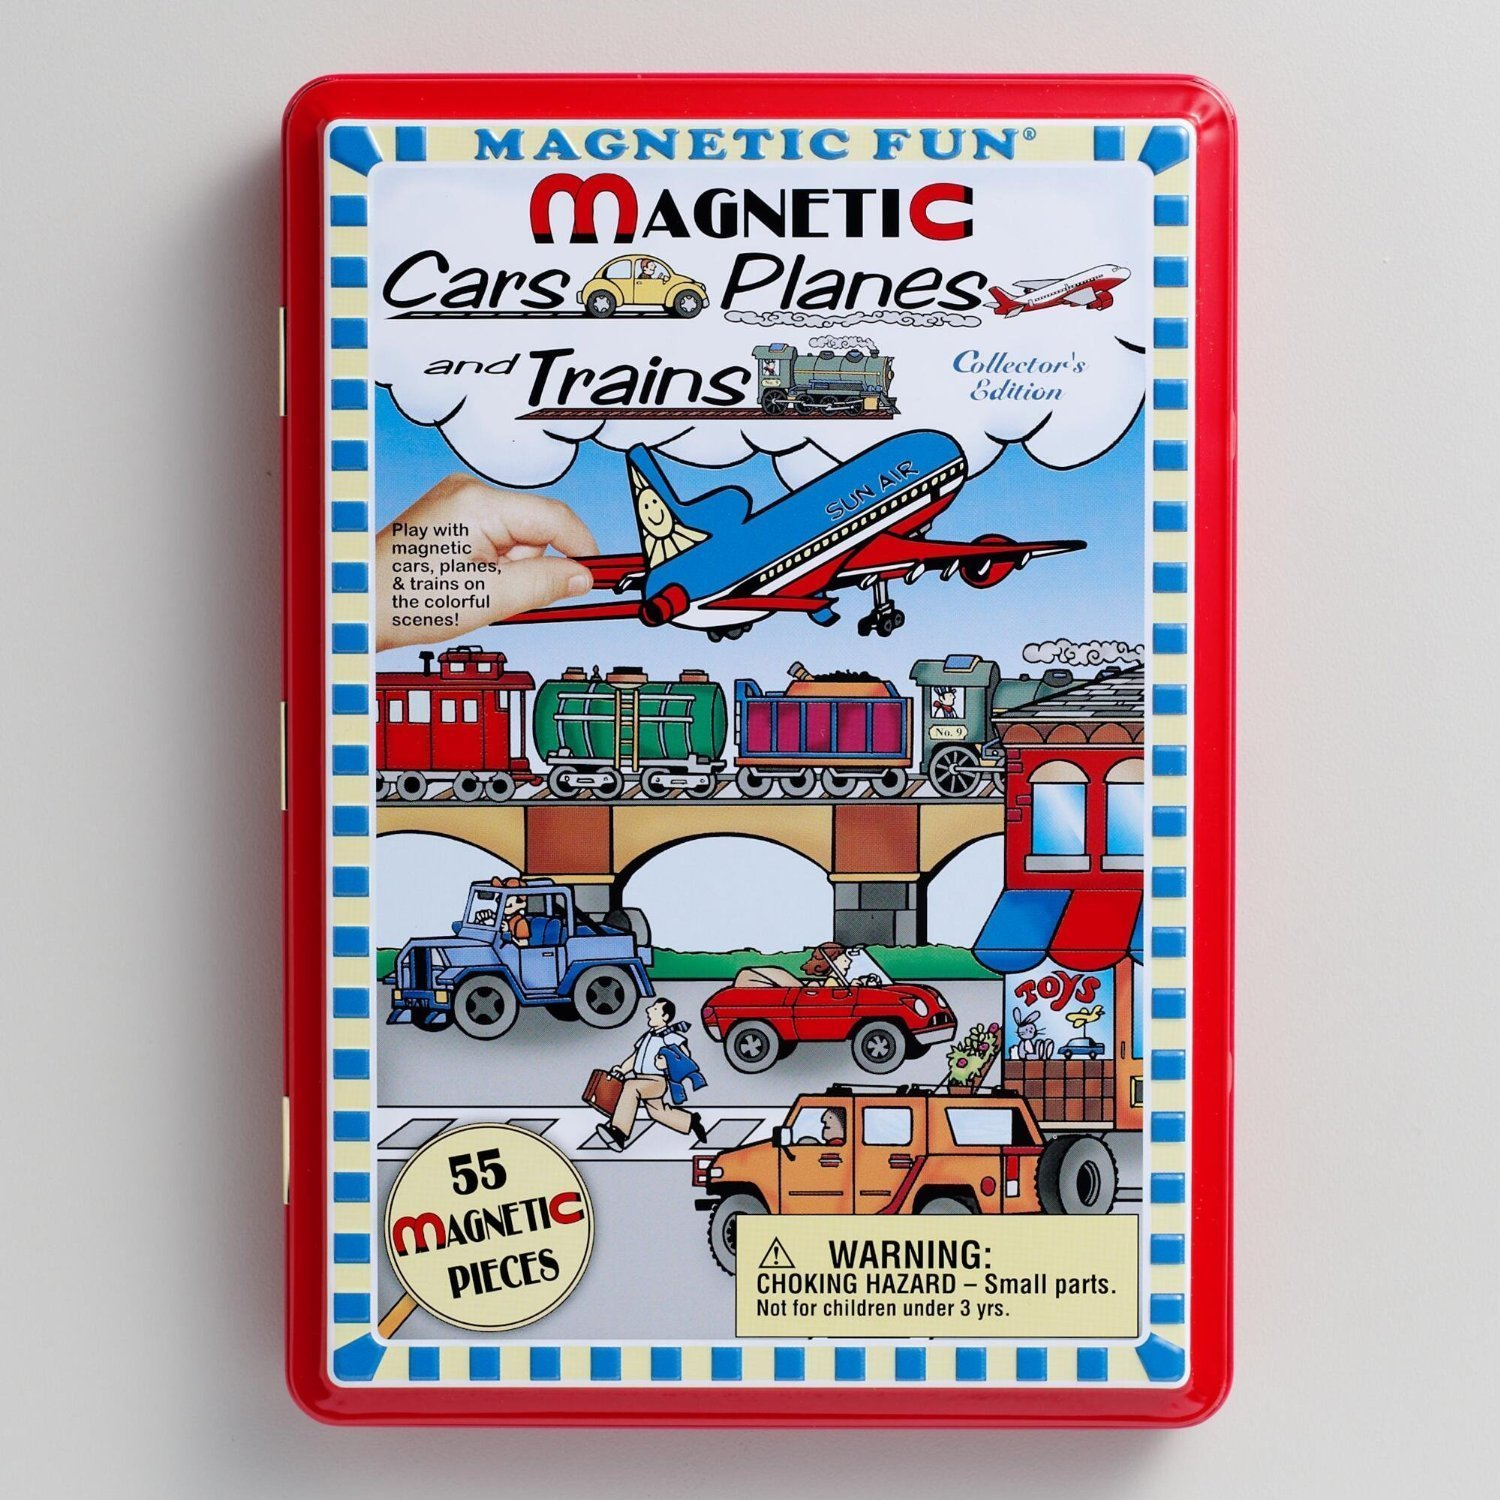 Magnetic Cars, Planes & Trains